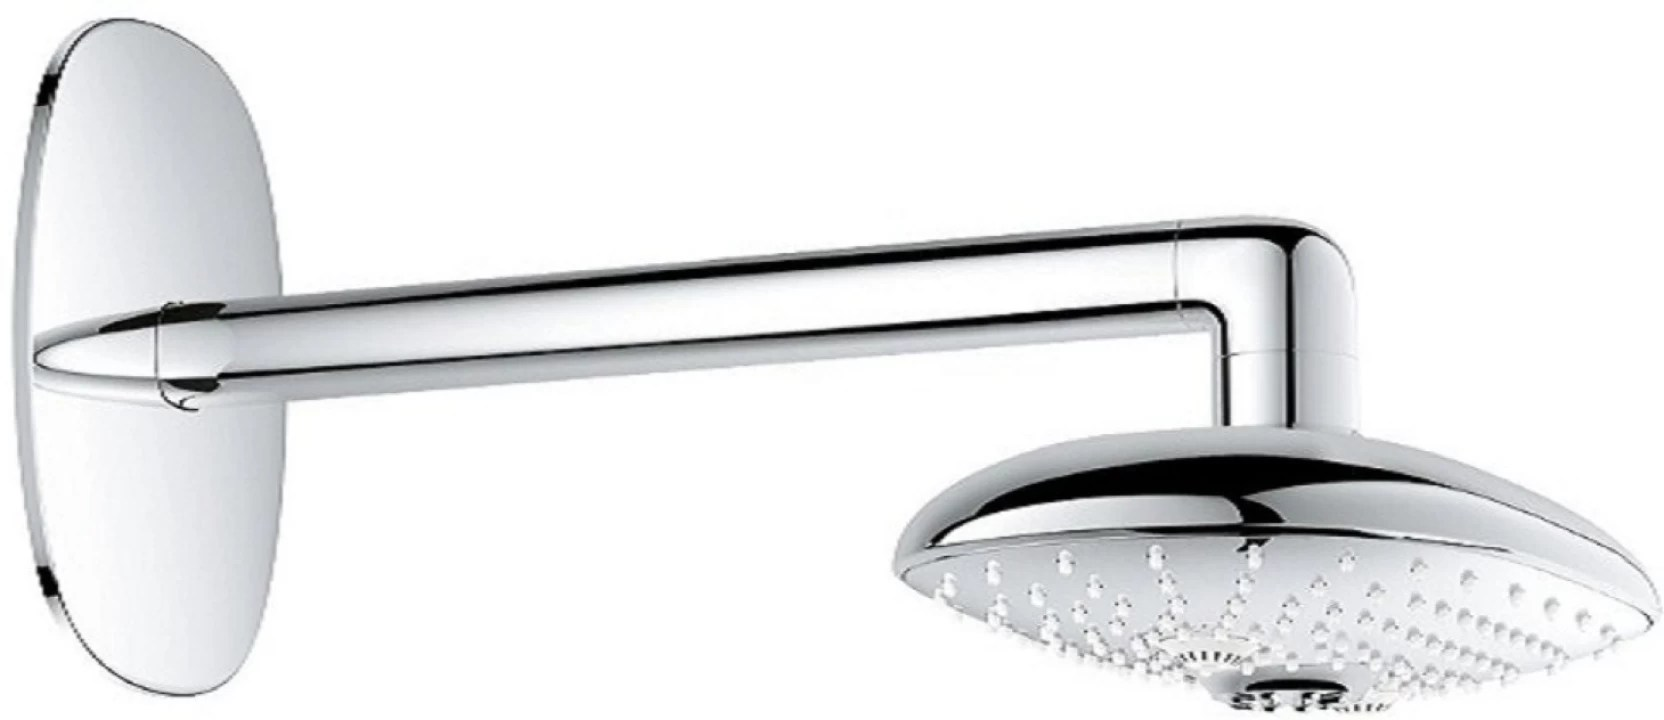 Grohe 26254000 Shower Head Price In India Buy Grohe